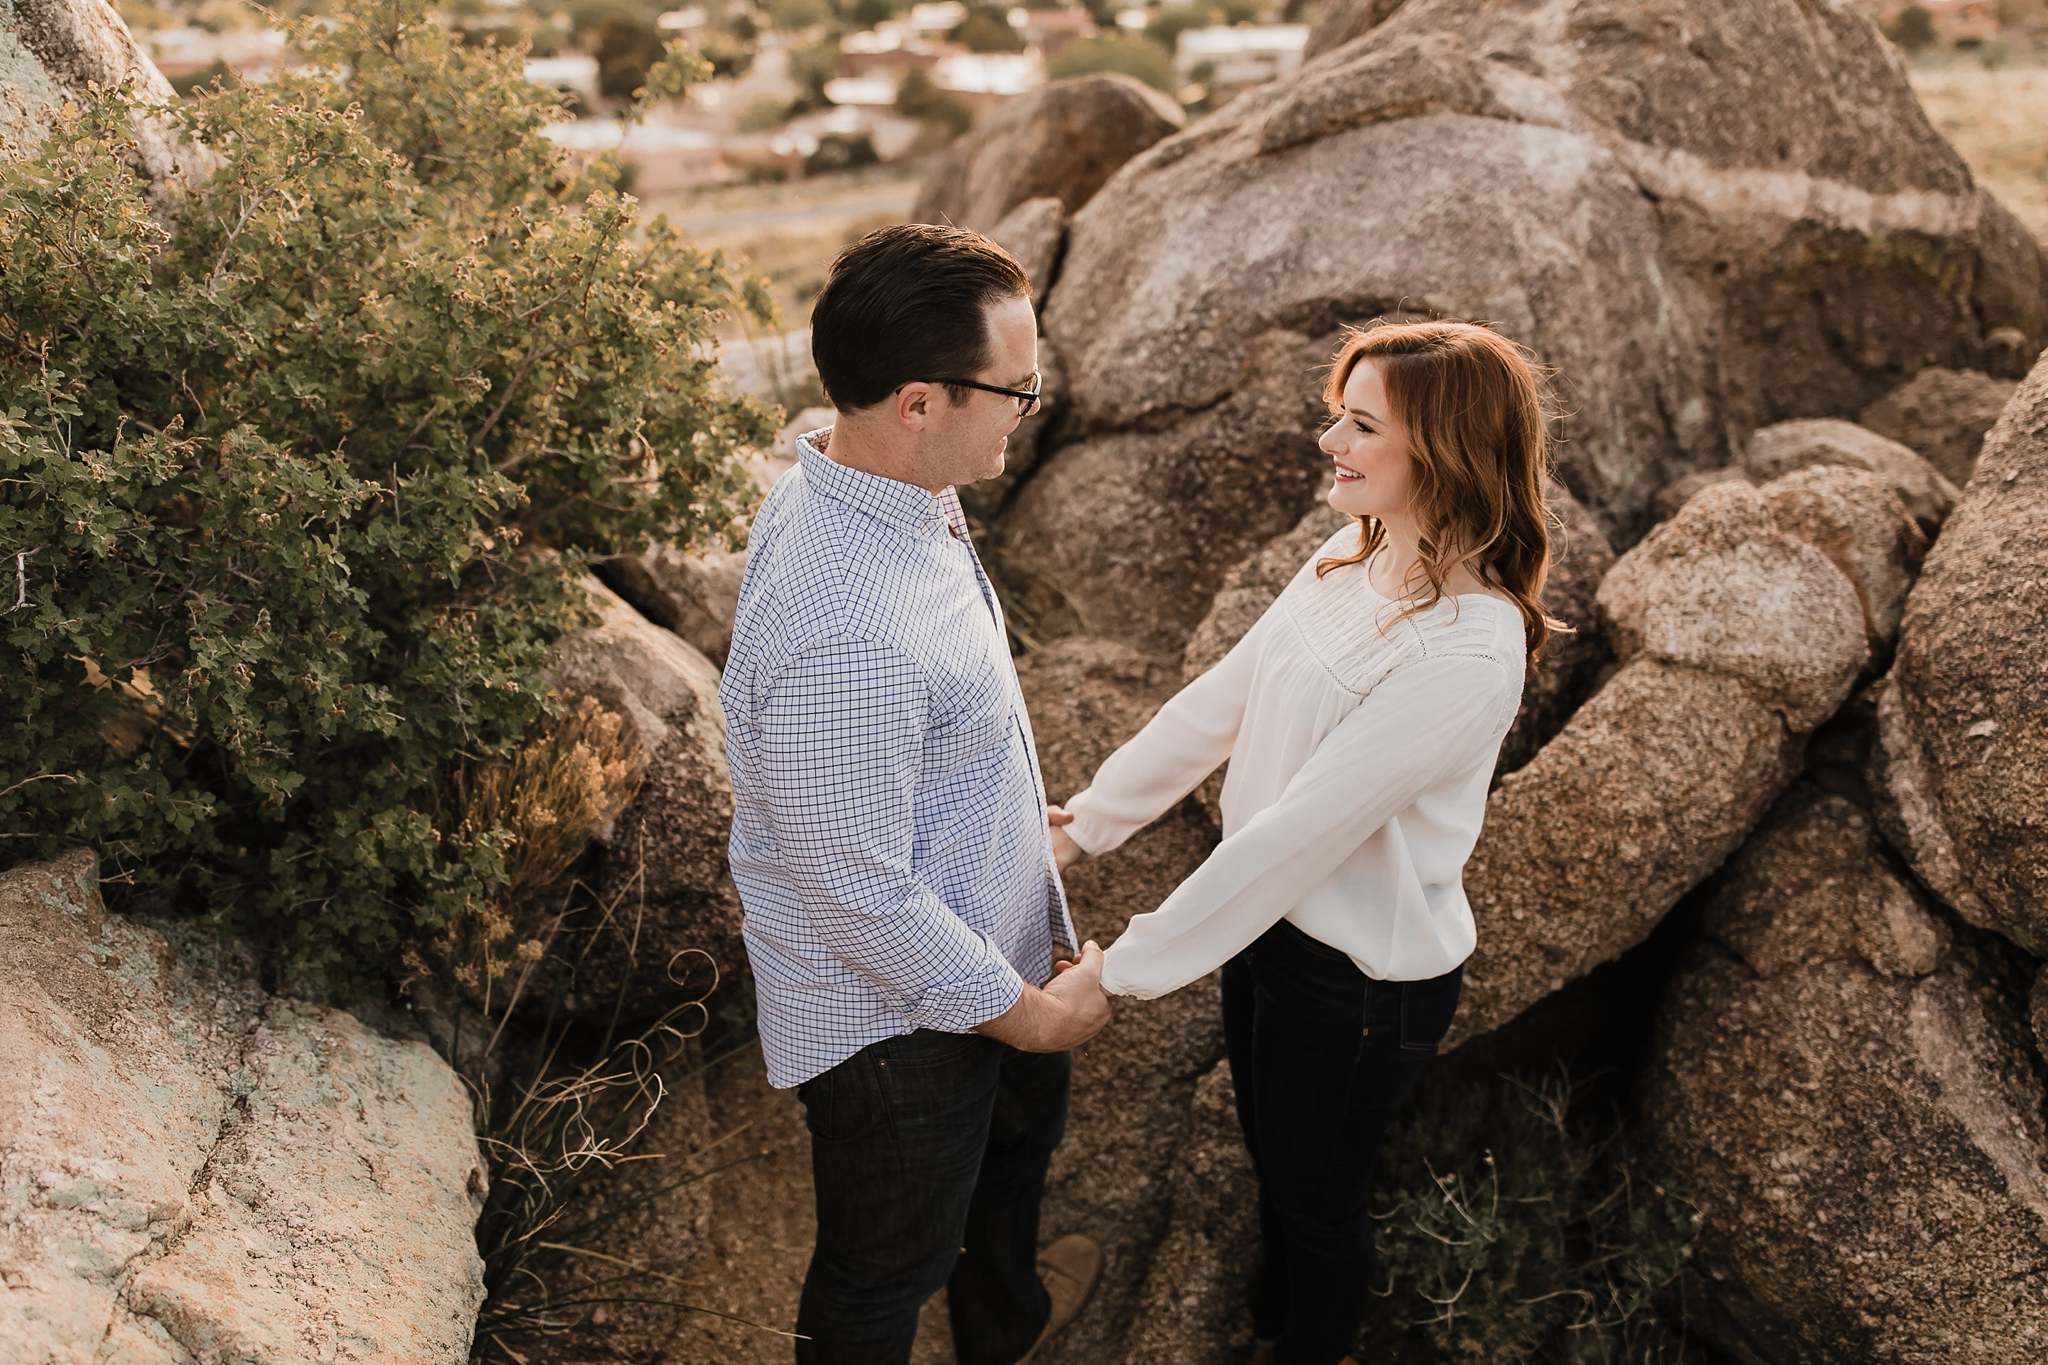 Alicia+lucia+photography+-+albuquerque+wedding+photographer+-+santa+fe+wedding+photography+-+new+mexico+wedding+photographer+-+new+mexico+wedding+-+new+mexico+engagement+-+engagement+photographer+-+mountain+engagement+-+desert+engagement_0016.jpg